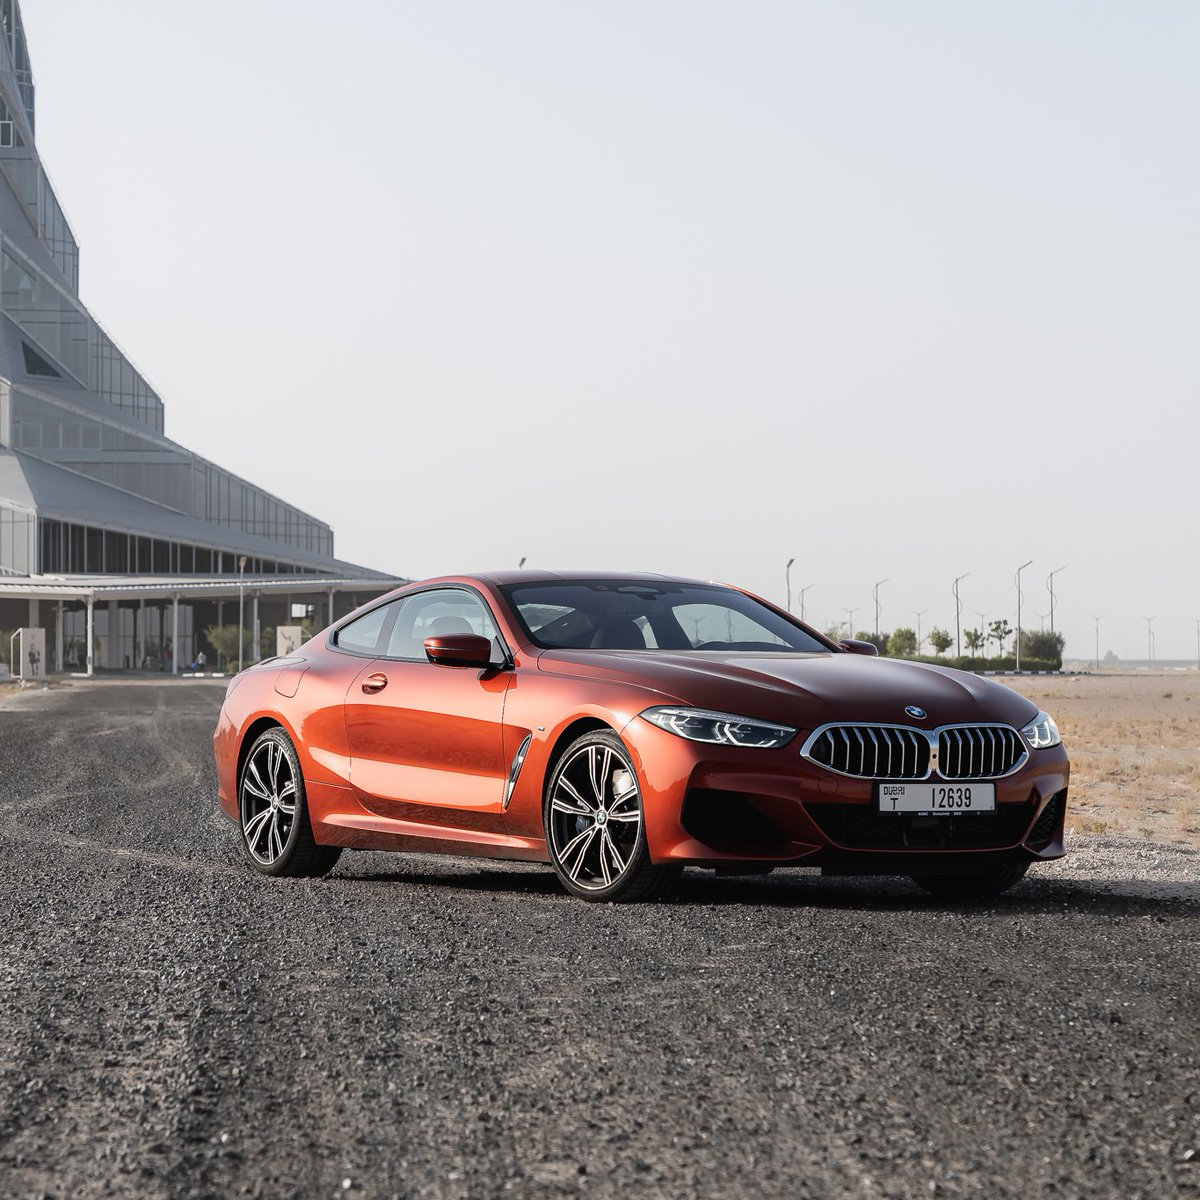 The 8 is an emblem of elegance and pure class. Enjoy up to 0.99% finance rate and first year free insurance and registration.  #BMW8Series #BMW840i #BMWAGMC #BMWuae #BMW #dubai #mydubai